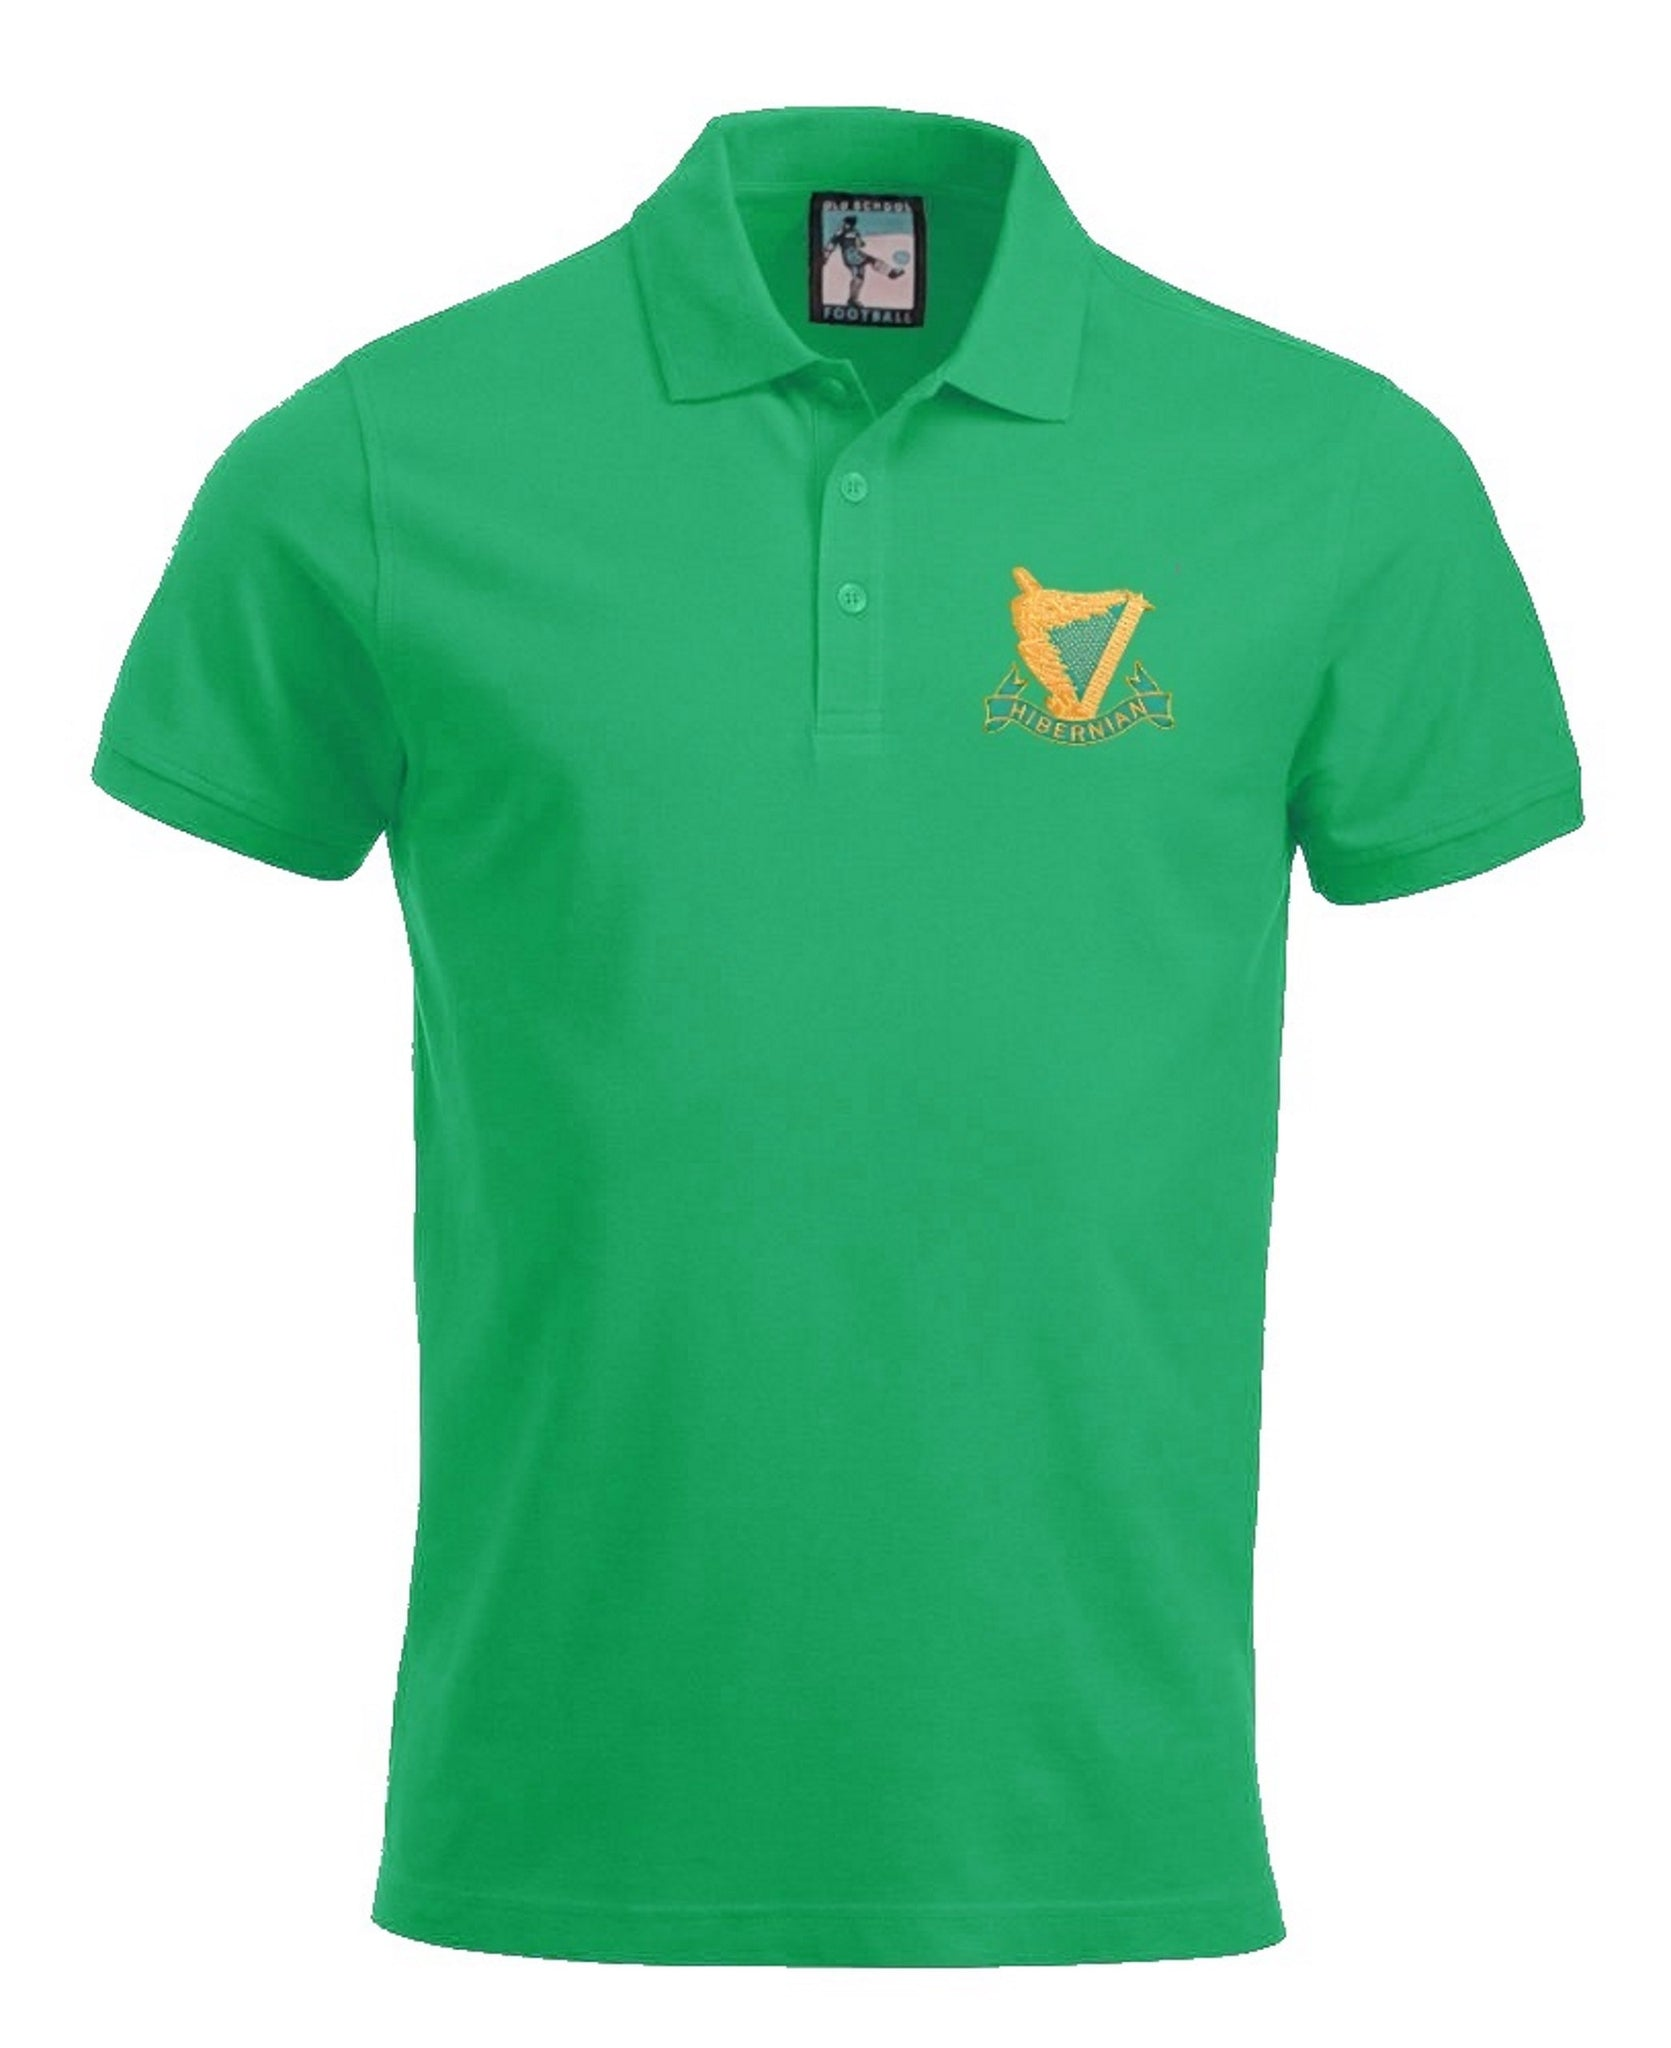 Hibernian Harps Retro 1900's Football Polo Shirt - Polo